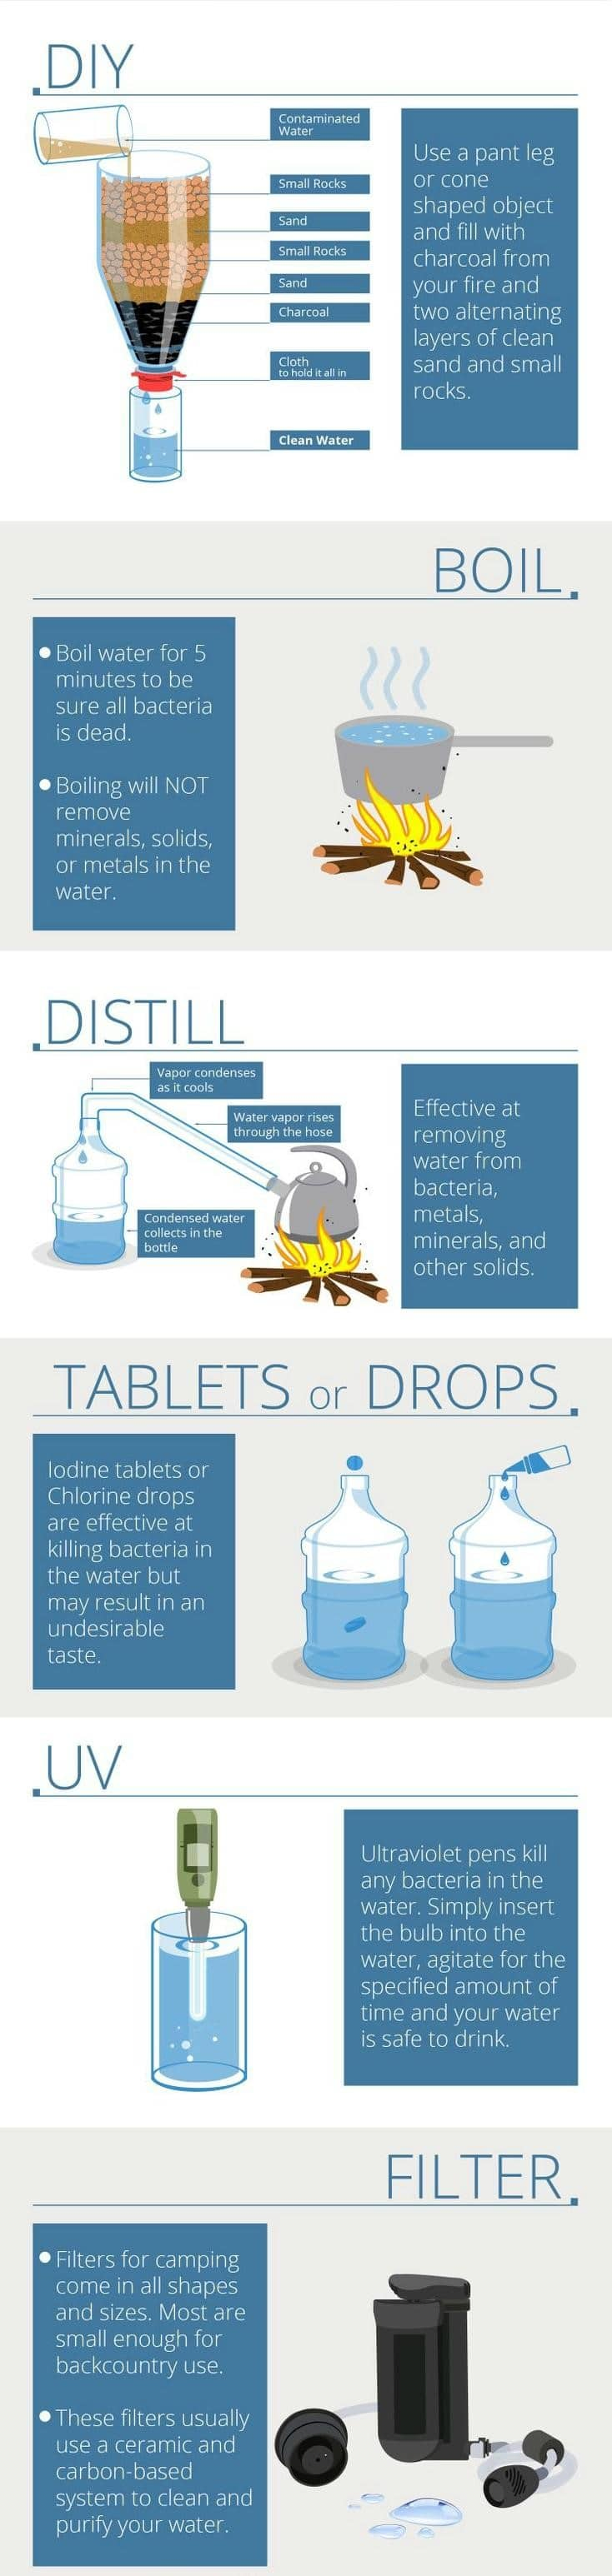 Purifying water infographic